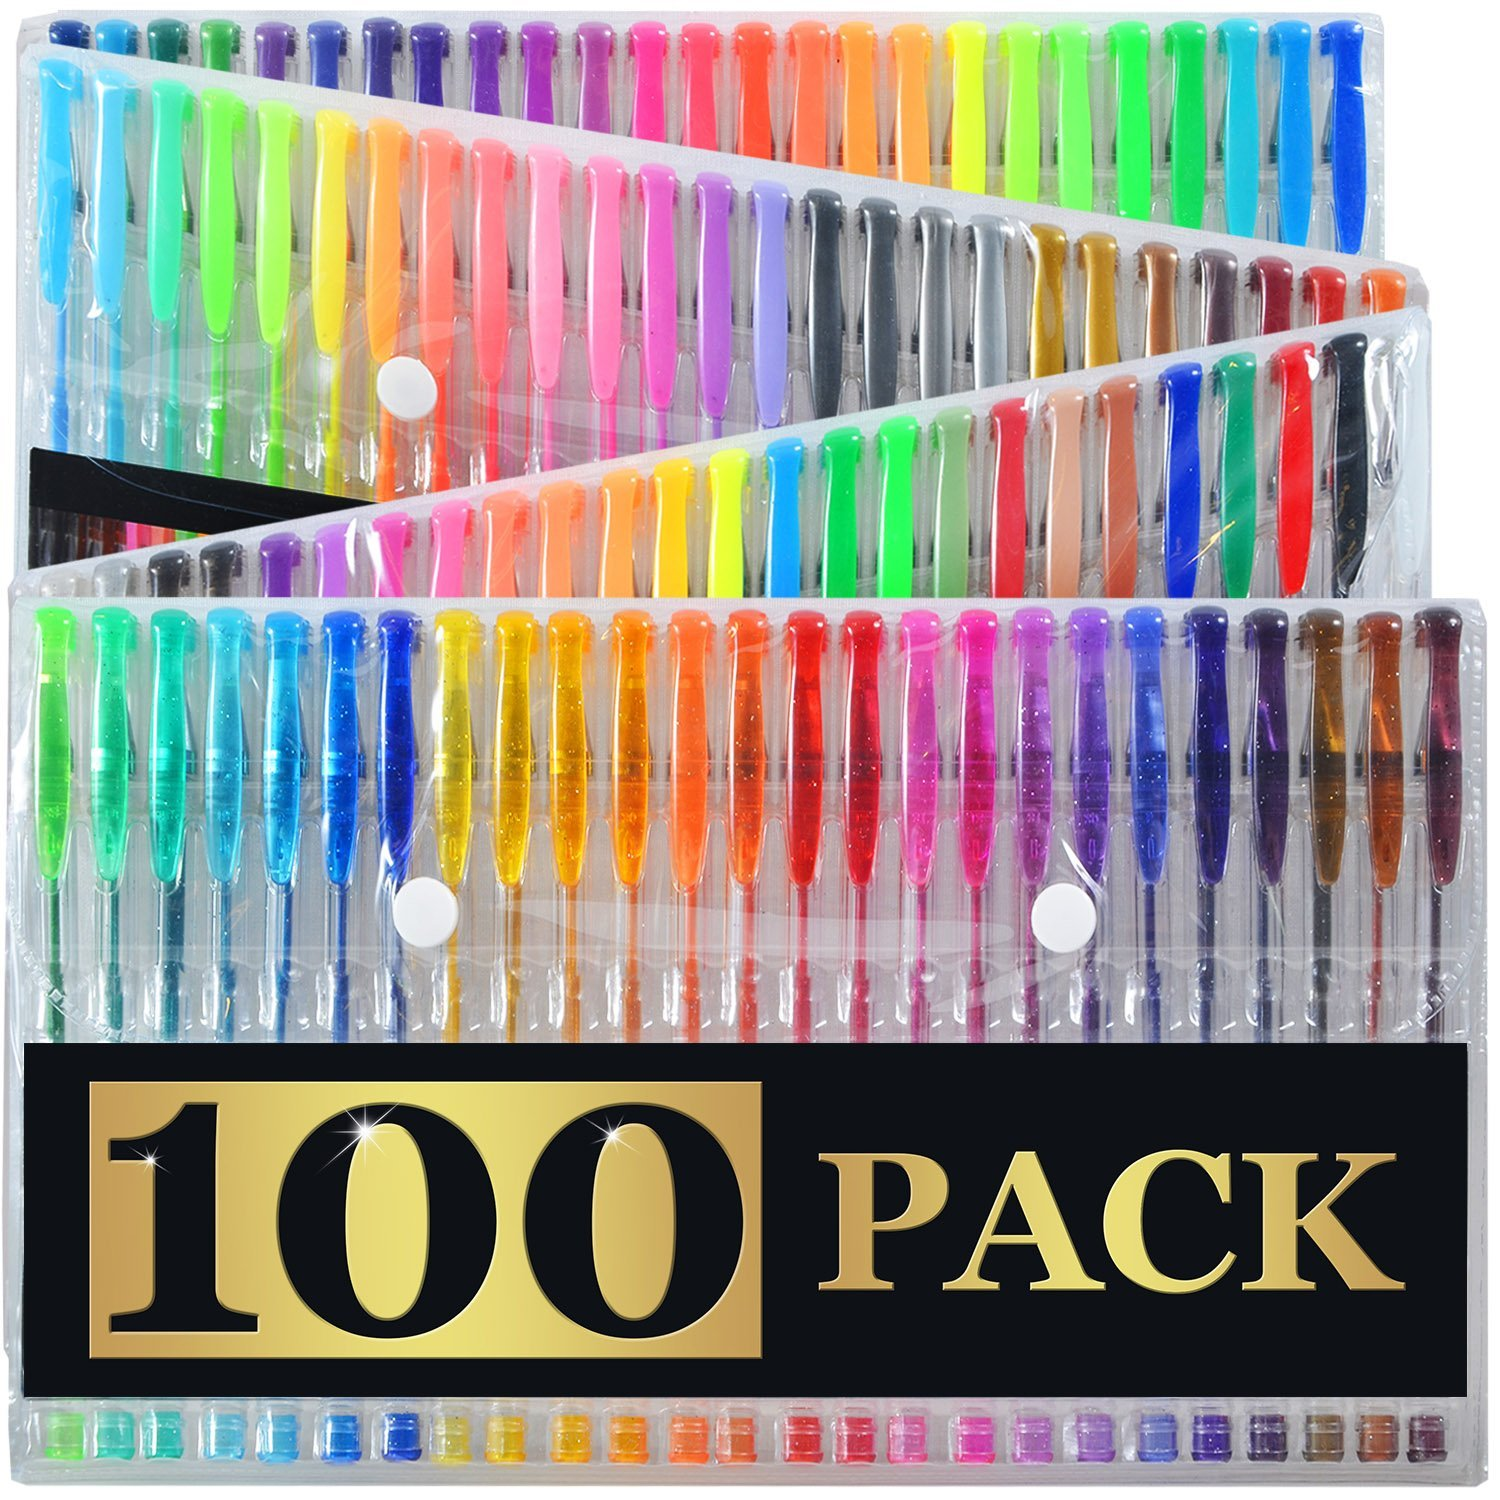 100 Gel Pens with Case (EXTRA LARGE SET) - 100 Individual Colors (No Duplicates) - Glitter, Metallic, Neon, Pastels, and more ink types! Perfect for Adult Coloring Books & Drawing